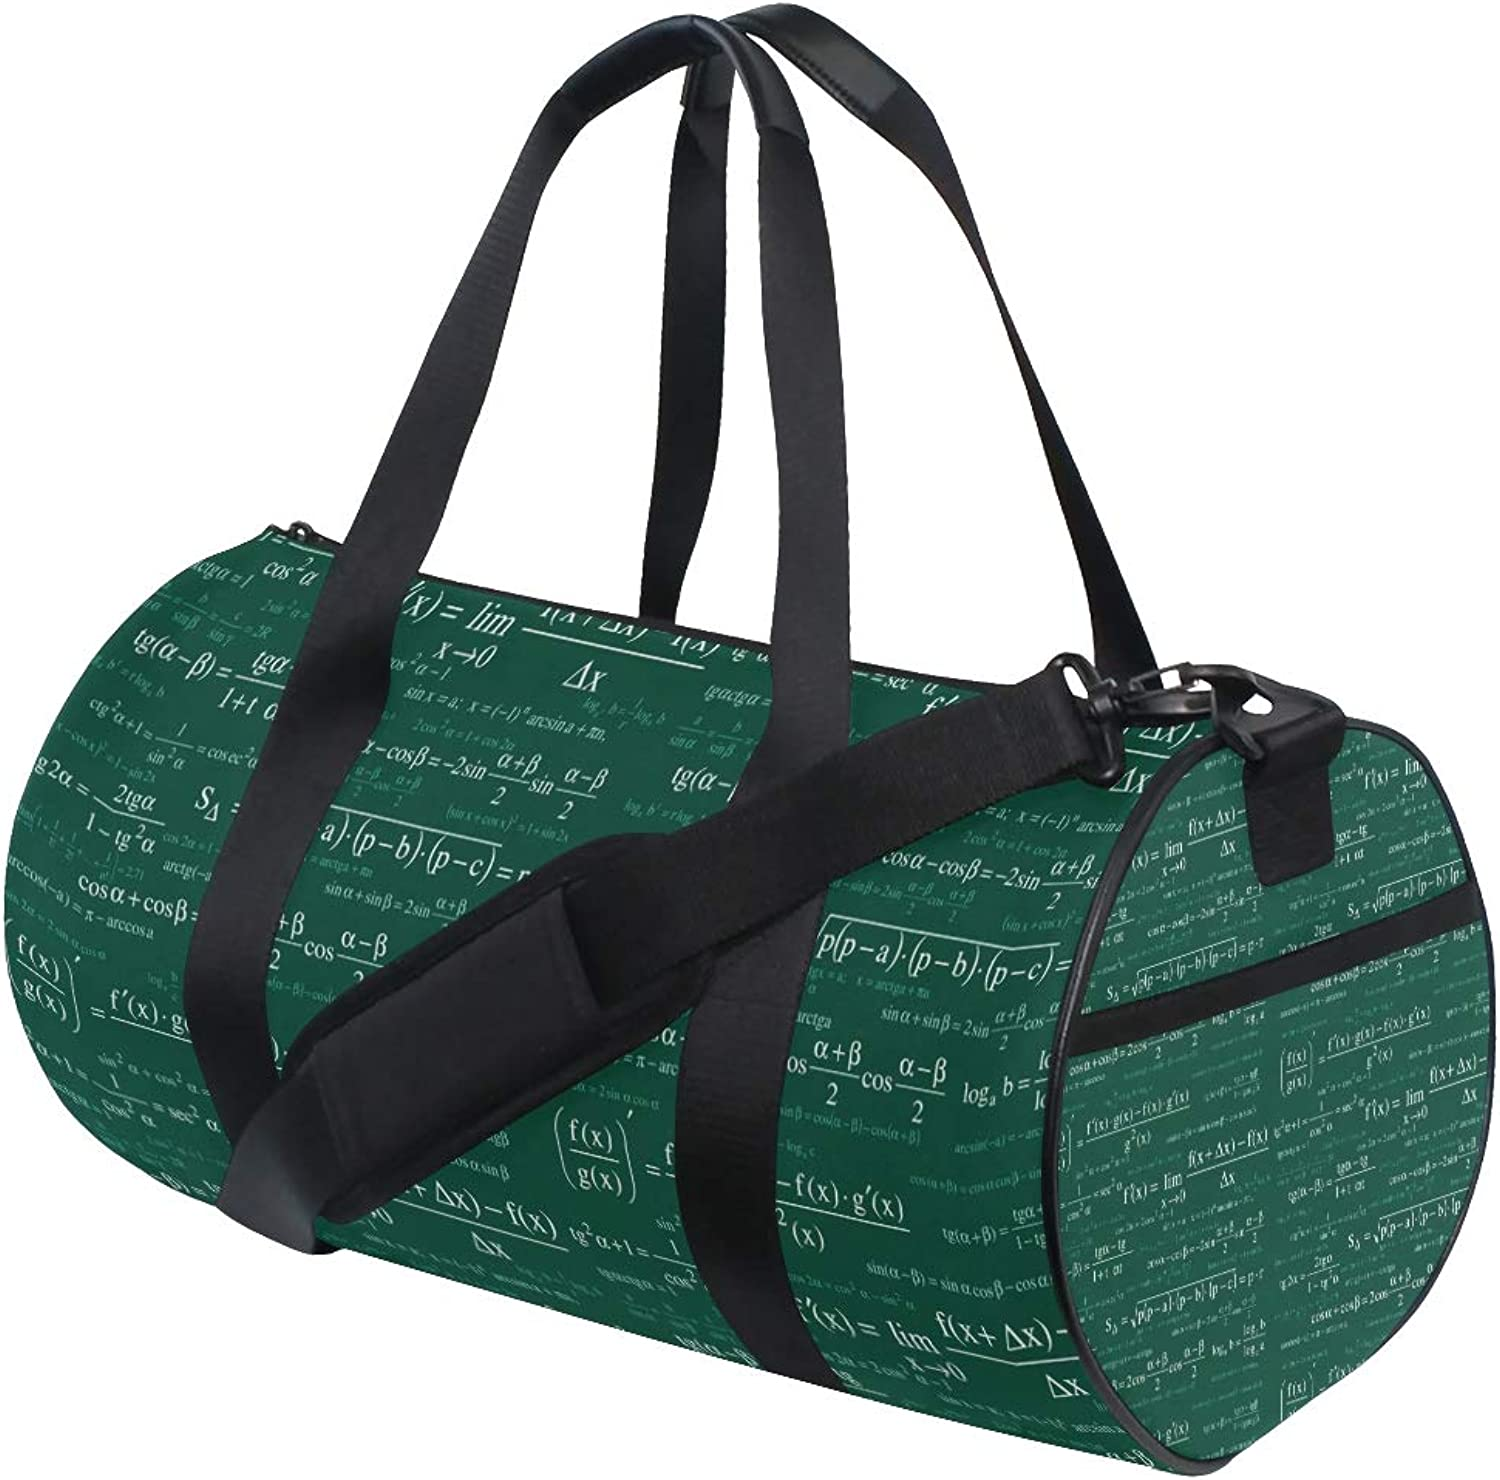 Russe Gym Bag Math Equations Book Formula with shoes Compartment Waterproof Travel Duffel Bag for Women and Men